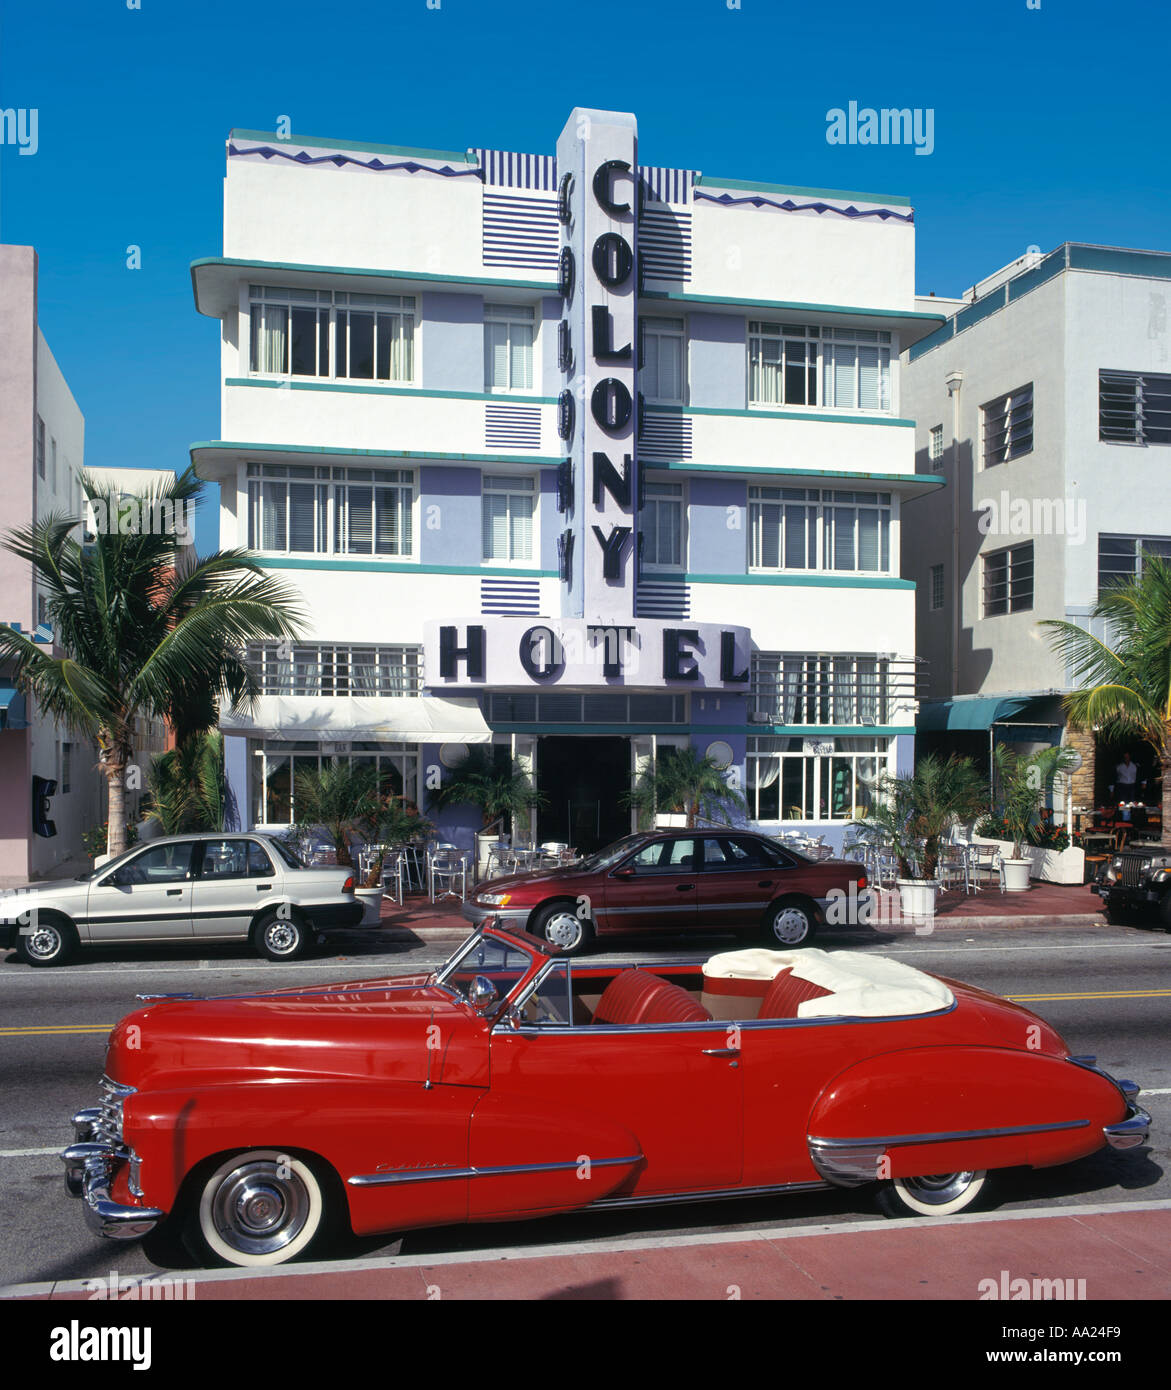 Vintage Car outside the art deco Colony Hotel, Ocean Drive, South Beach, Miami Beach, FL, USA - Stock Image